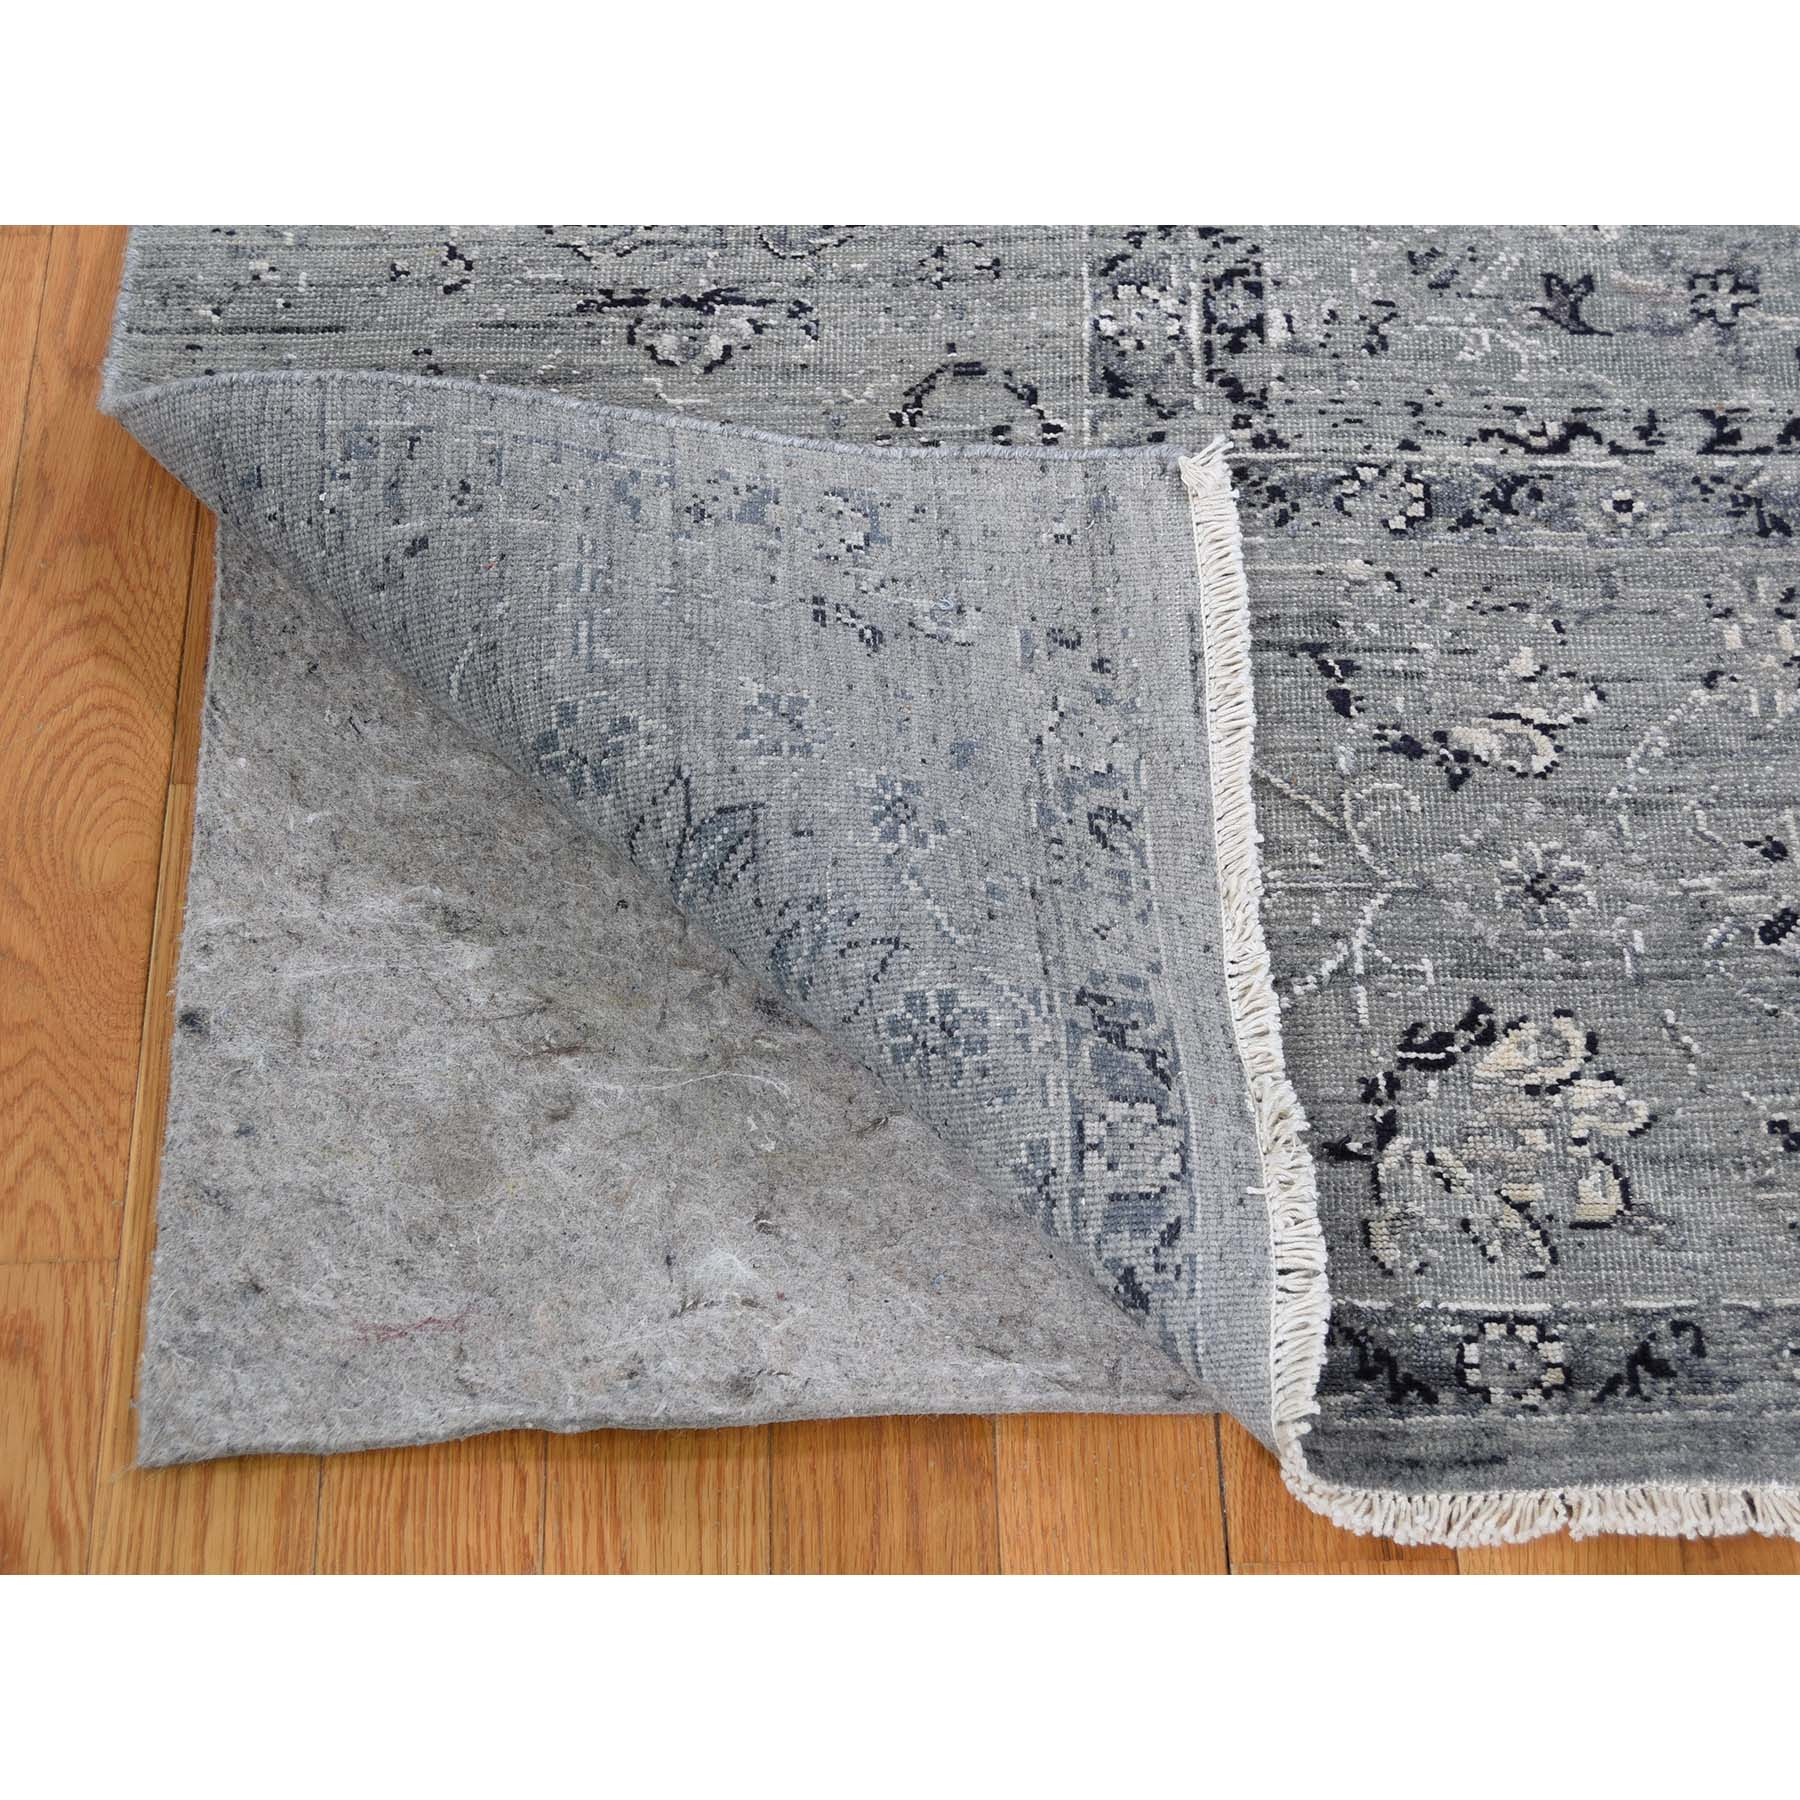 8-3 x10-1  Silk With Textured Wool Broken Persian Design Hand-Knotted Oriental Rug